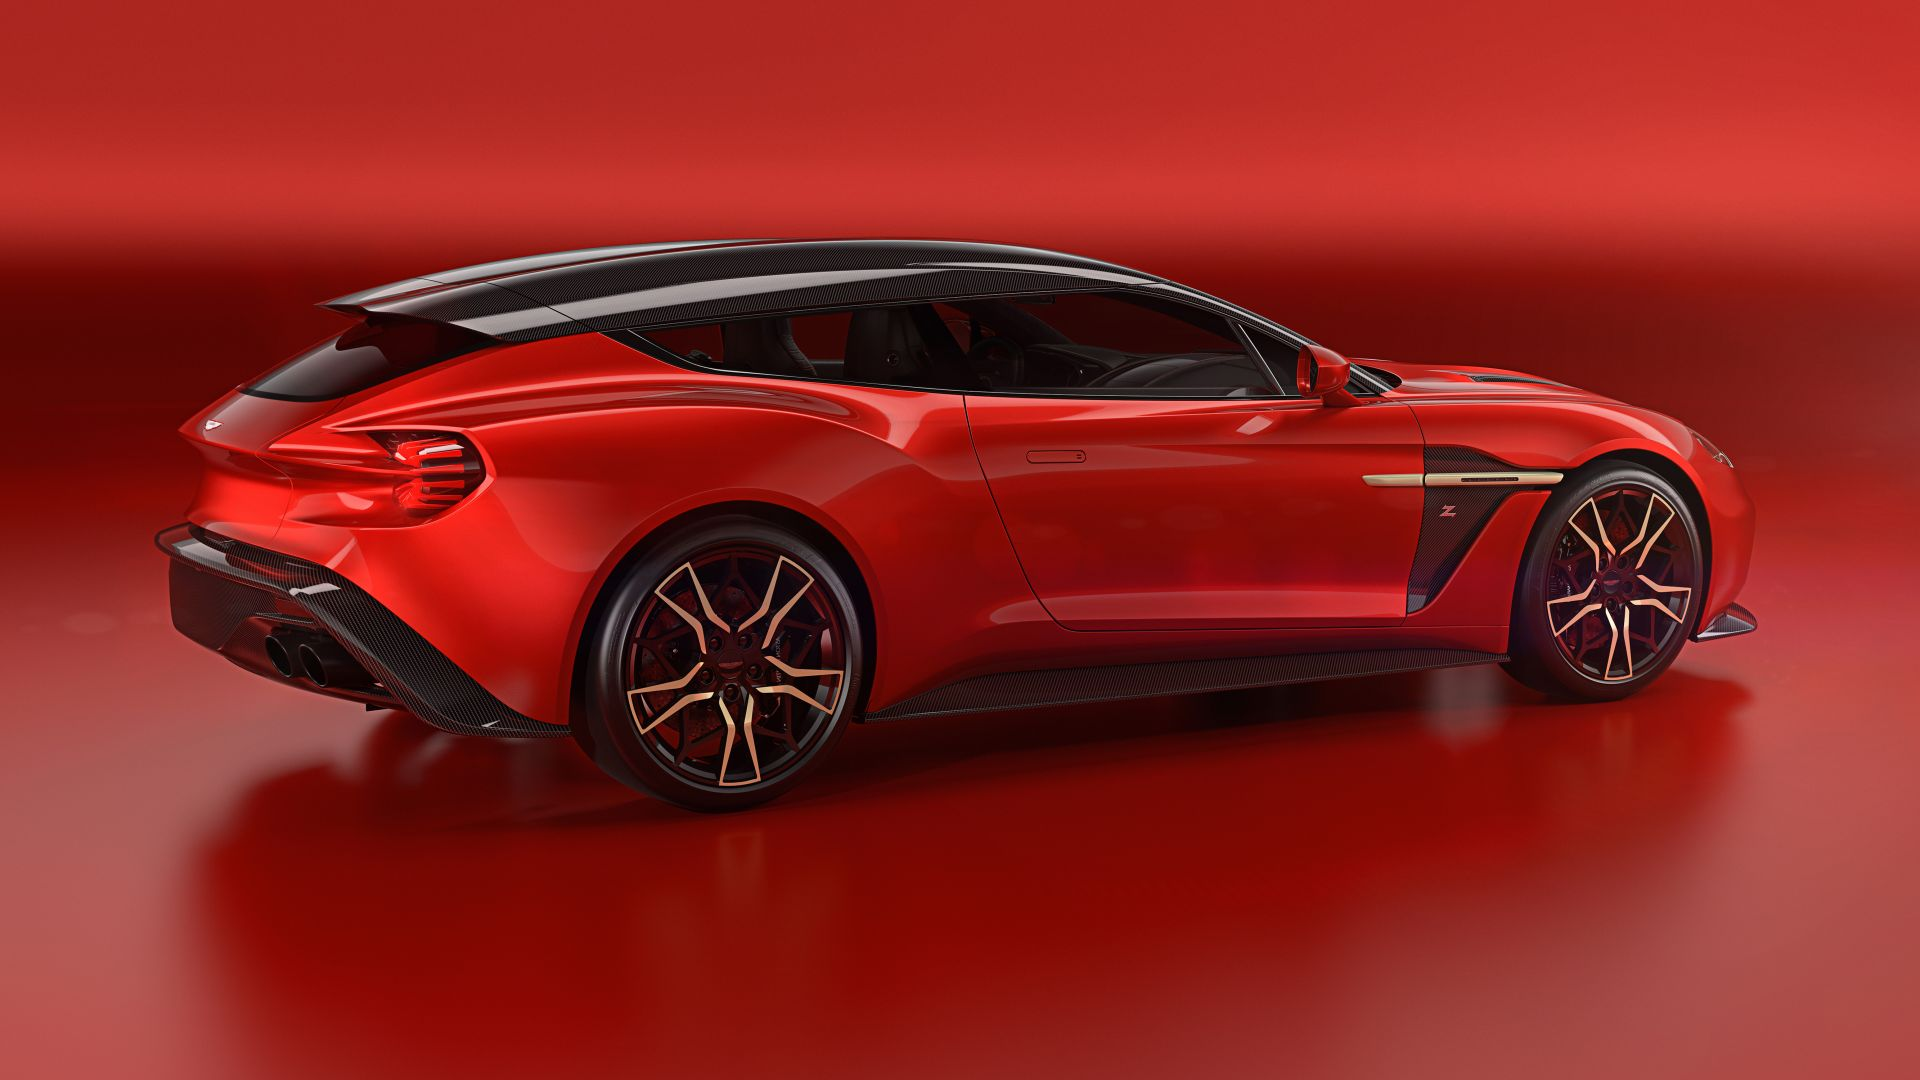 Aston Martin Vanquish Zagato Shooting Brake, 2019 Cars, 5K (horizontal)